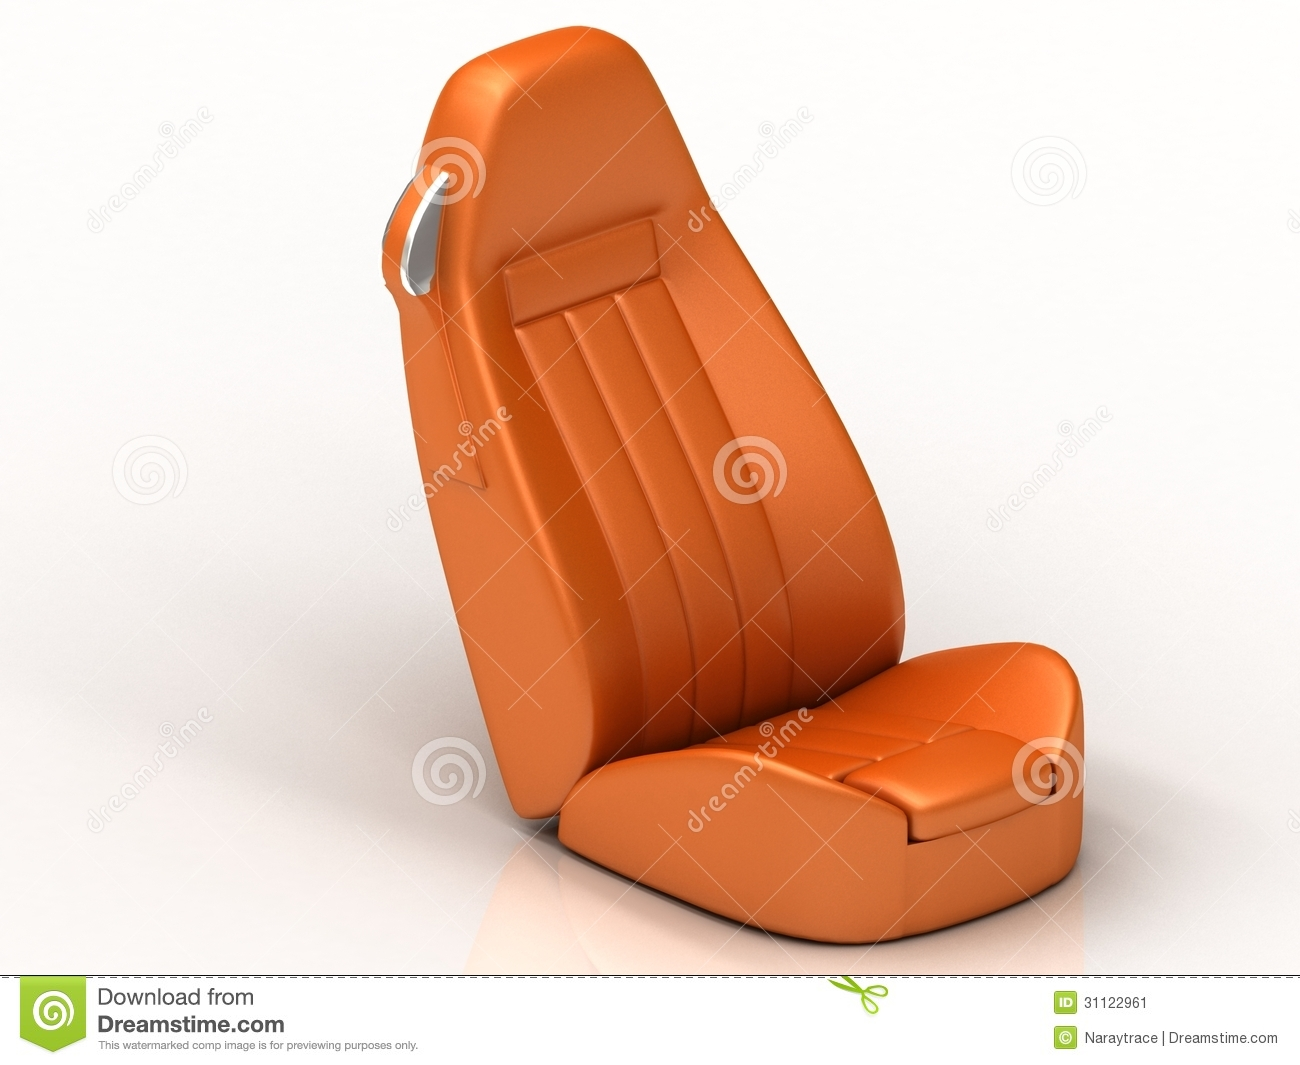 suite orange car seat from the car stock image image 31122961. Black Bedroom Furniture Sets. Home Design Ideas